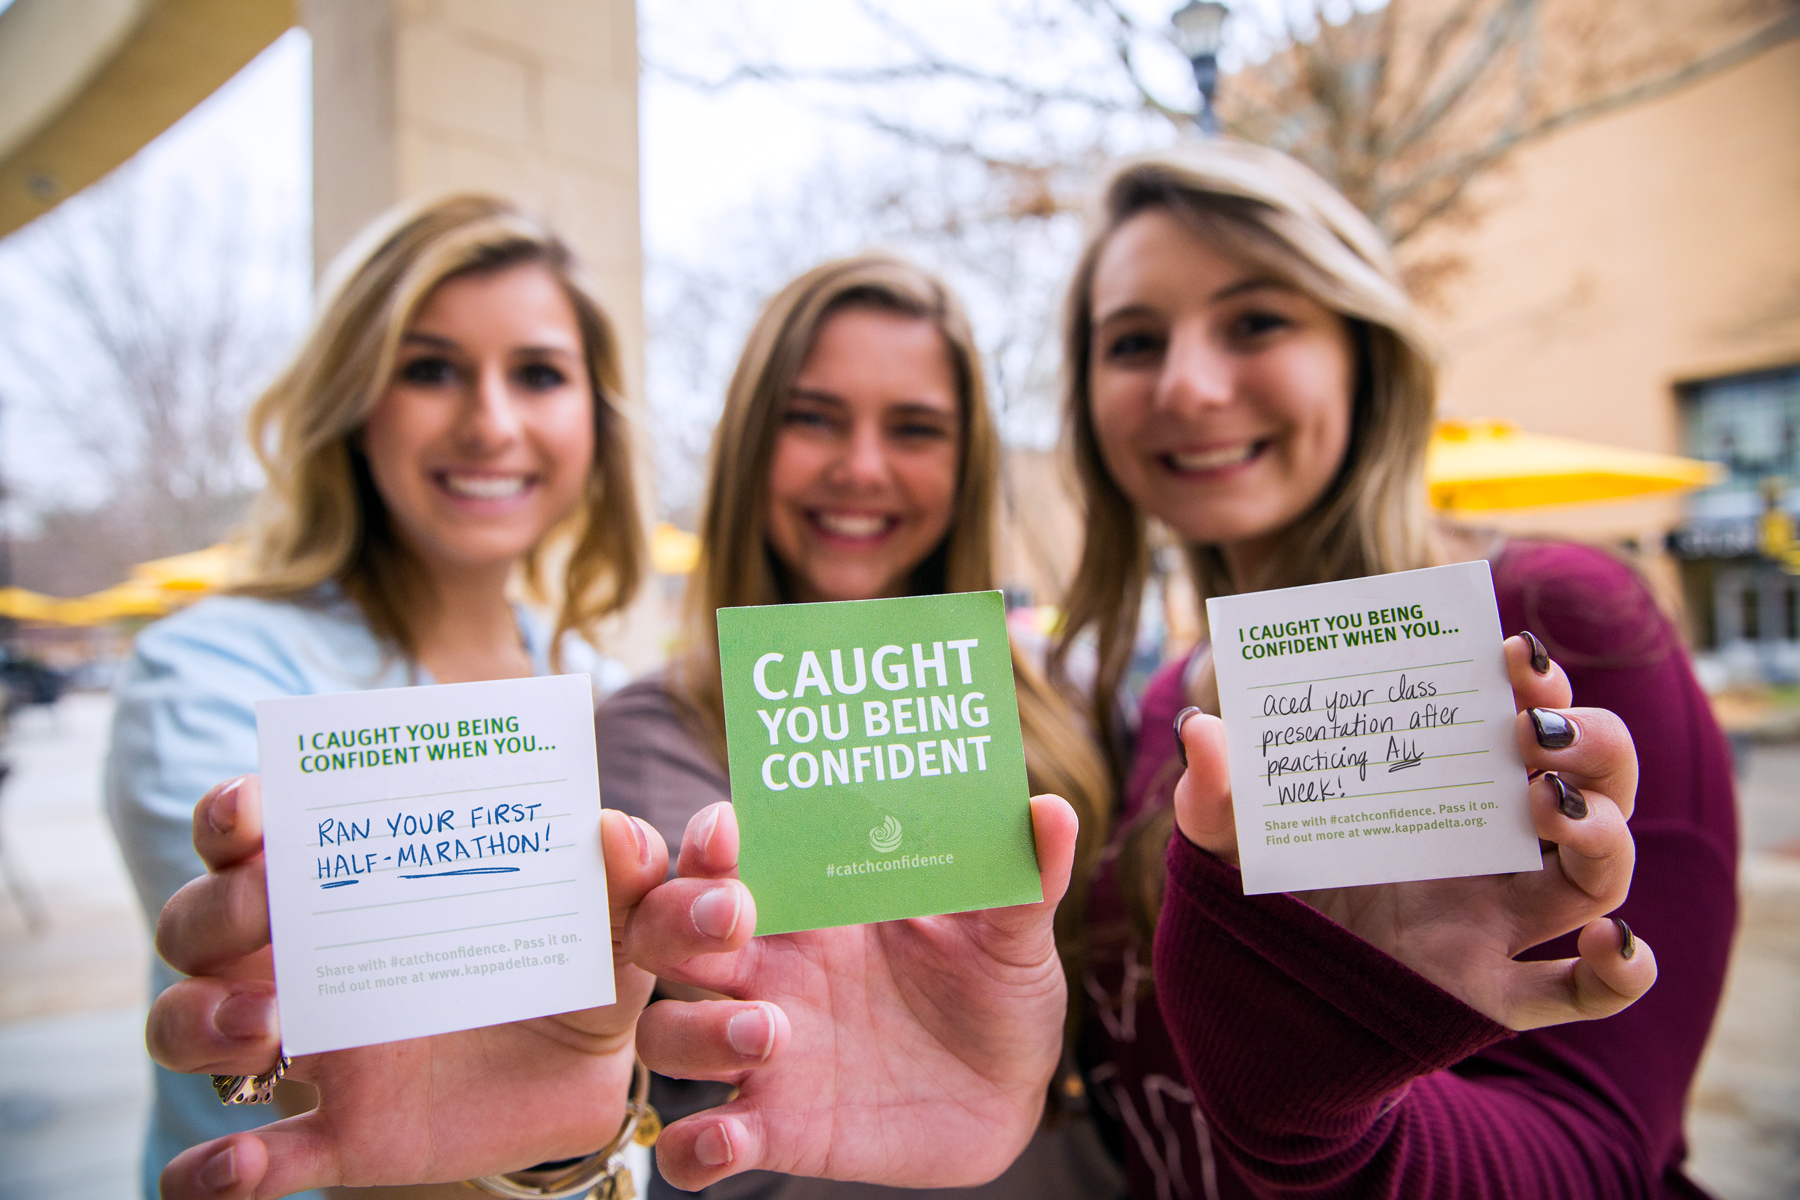 caught you being confident business cards with messages